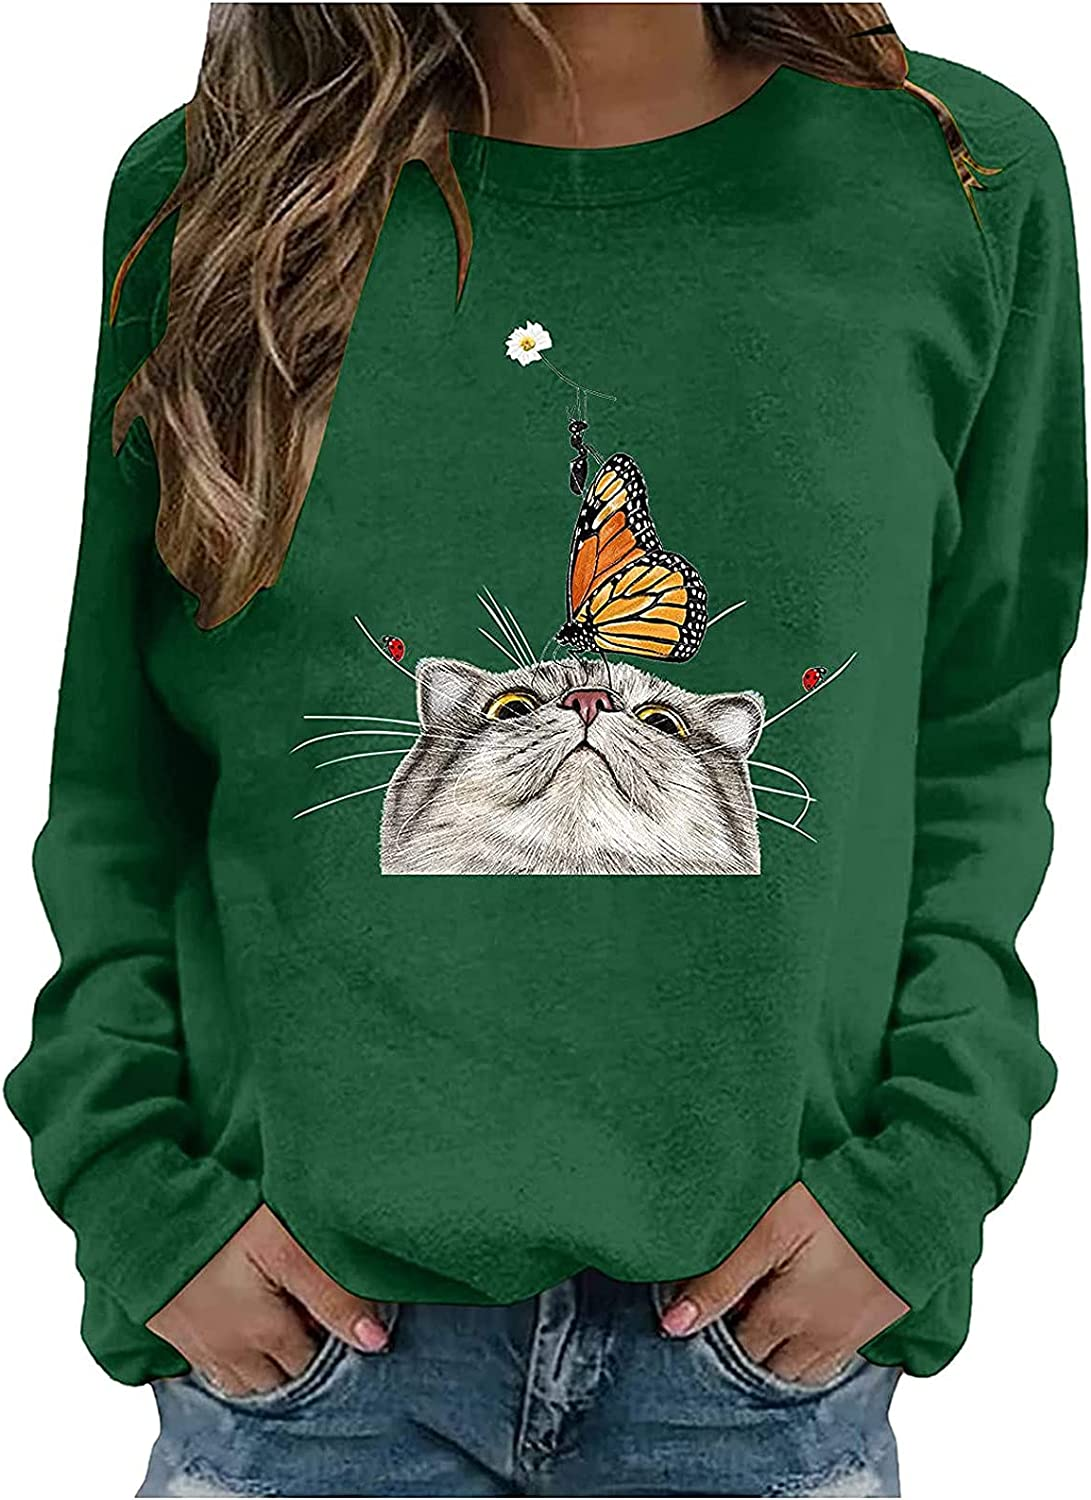 Crewneck Sweatshirts for Women Funny Cat Printed Long Sleeve Tshirts Loose Comfy Pullover Workout Tops